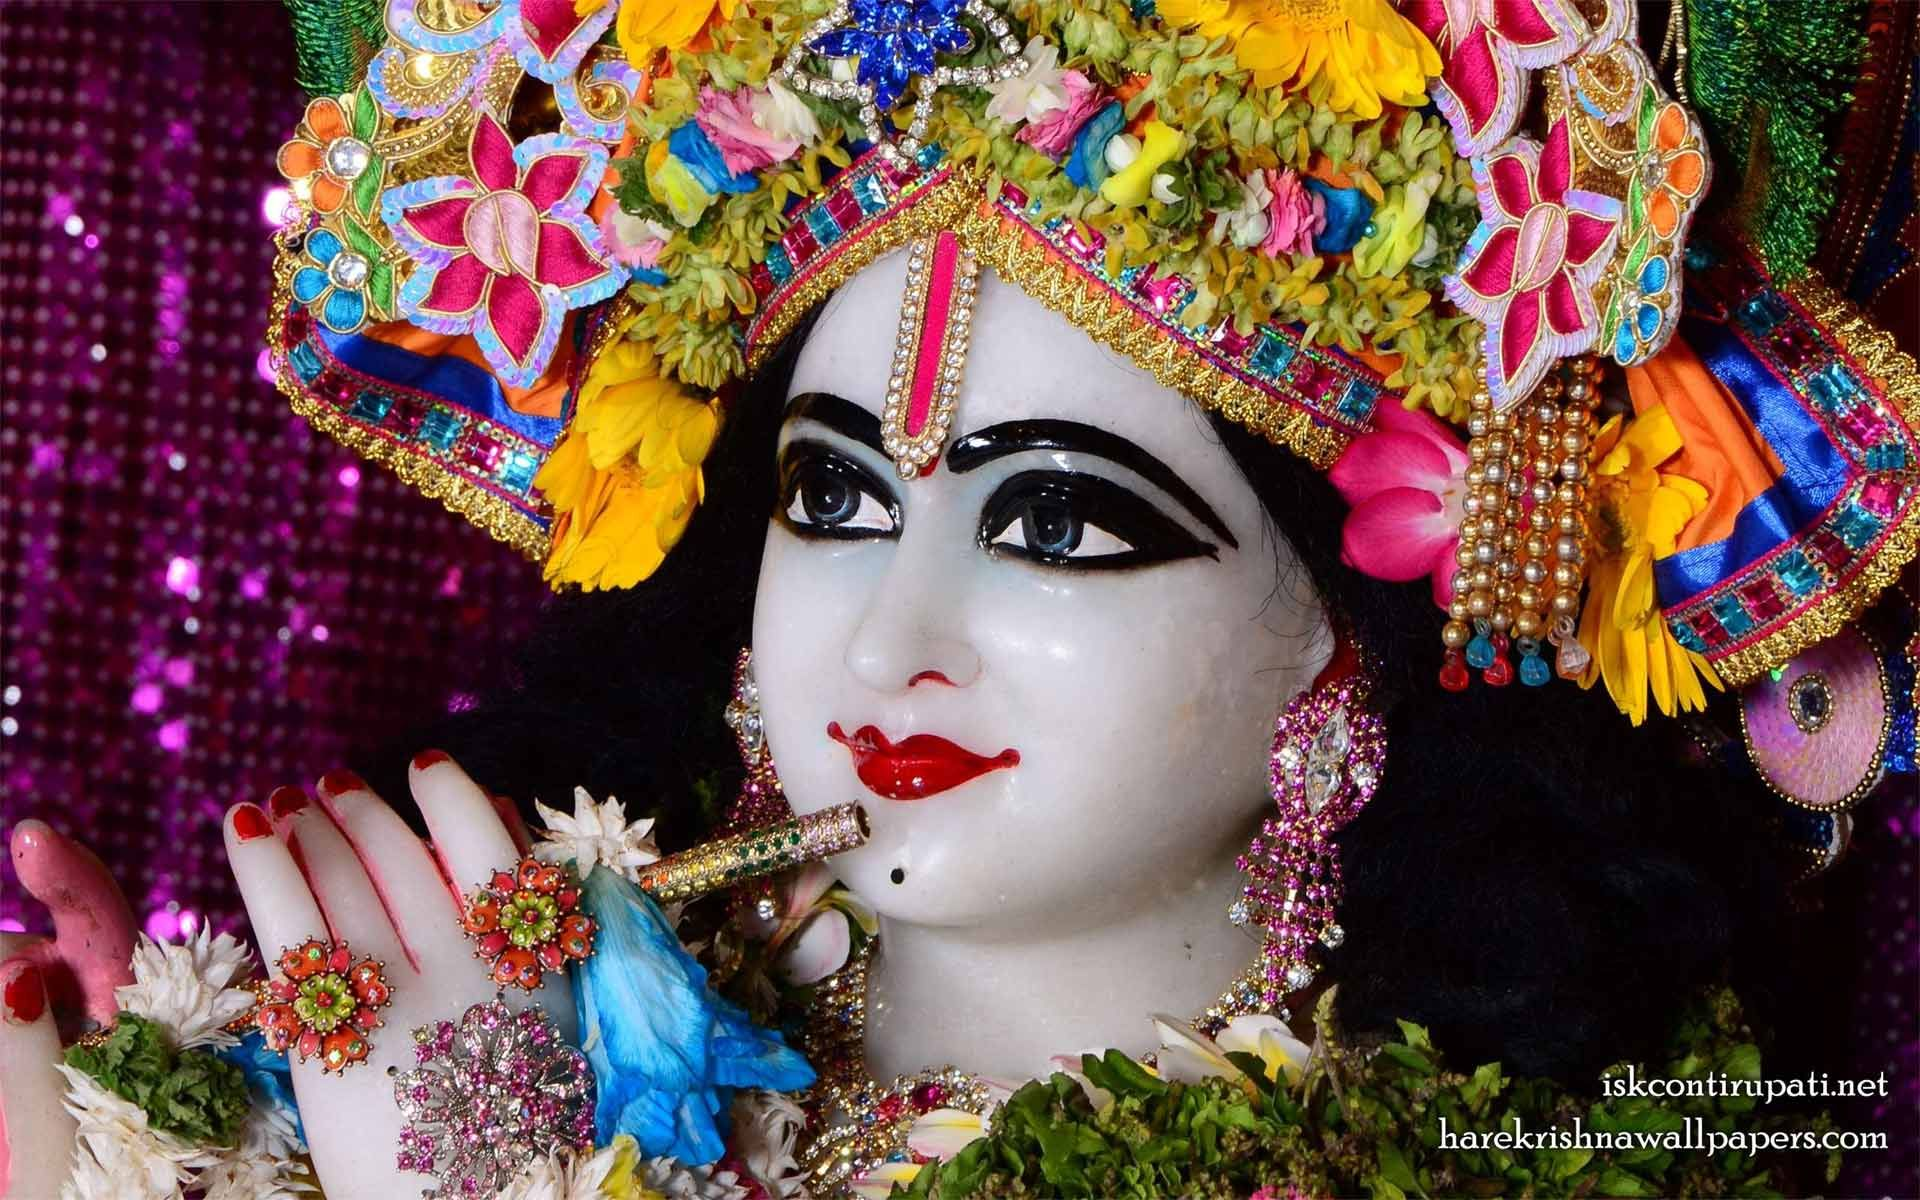 iskcon krishna wallpapers hd - android apps on google play | images